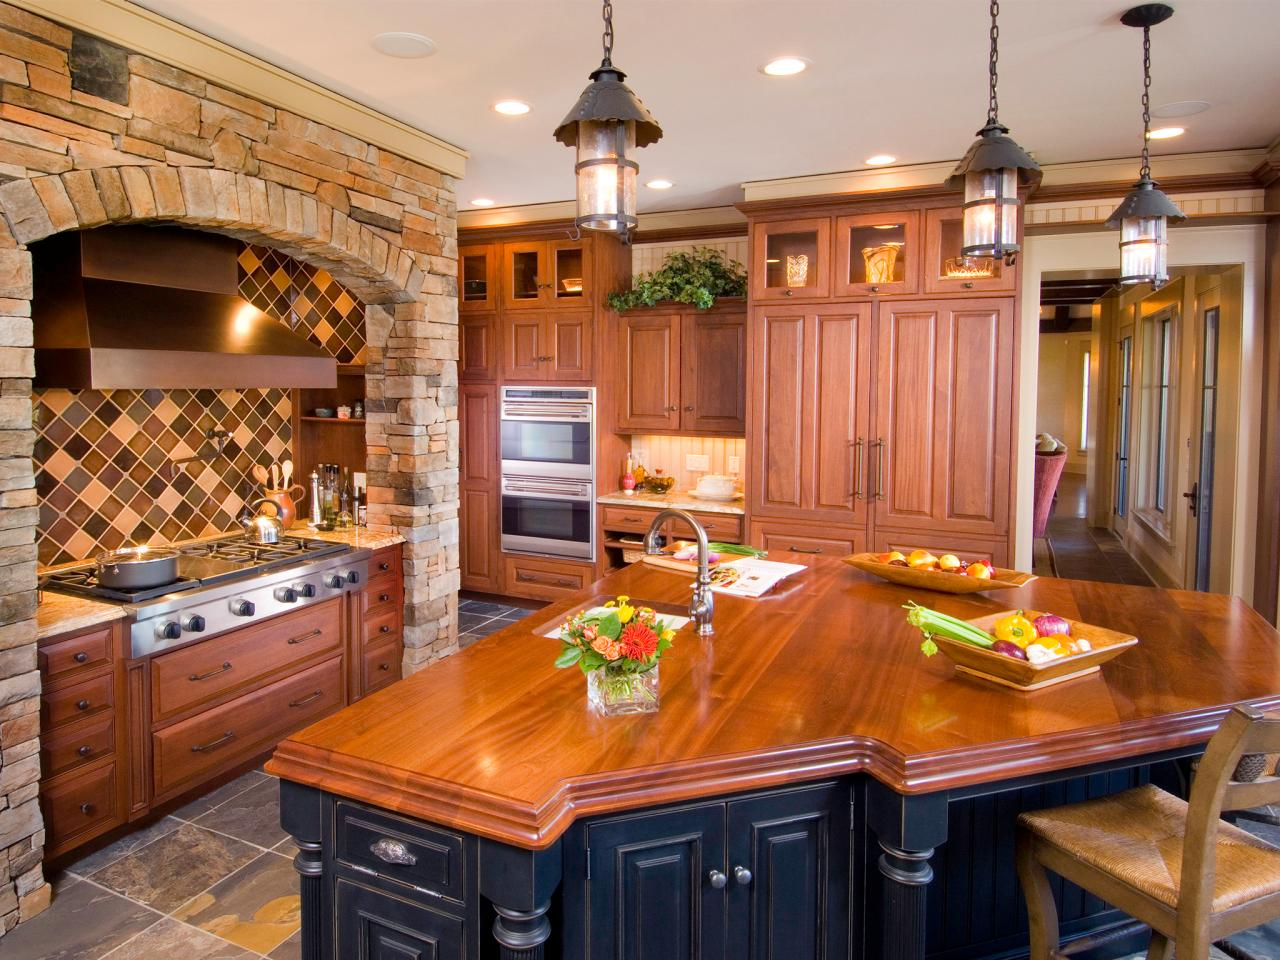 charming and classy wooden kitchen countertops wooden kitchen countertops The Shiny Manner of Polished Wood